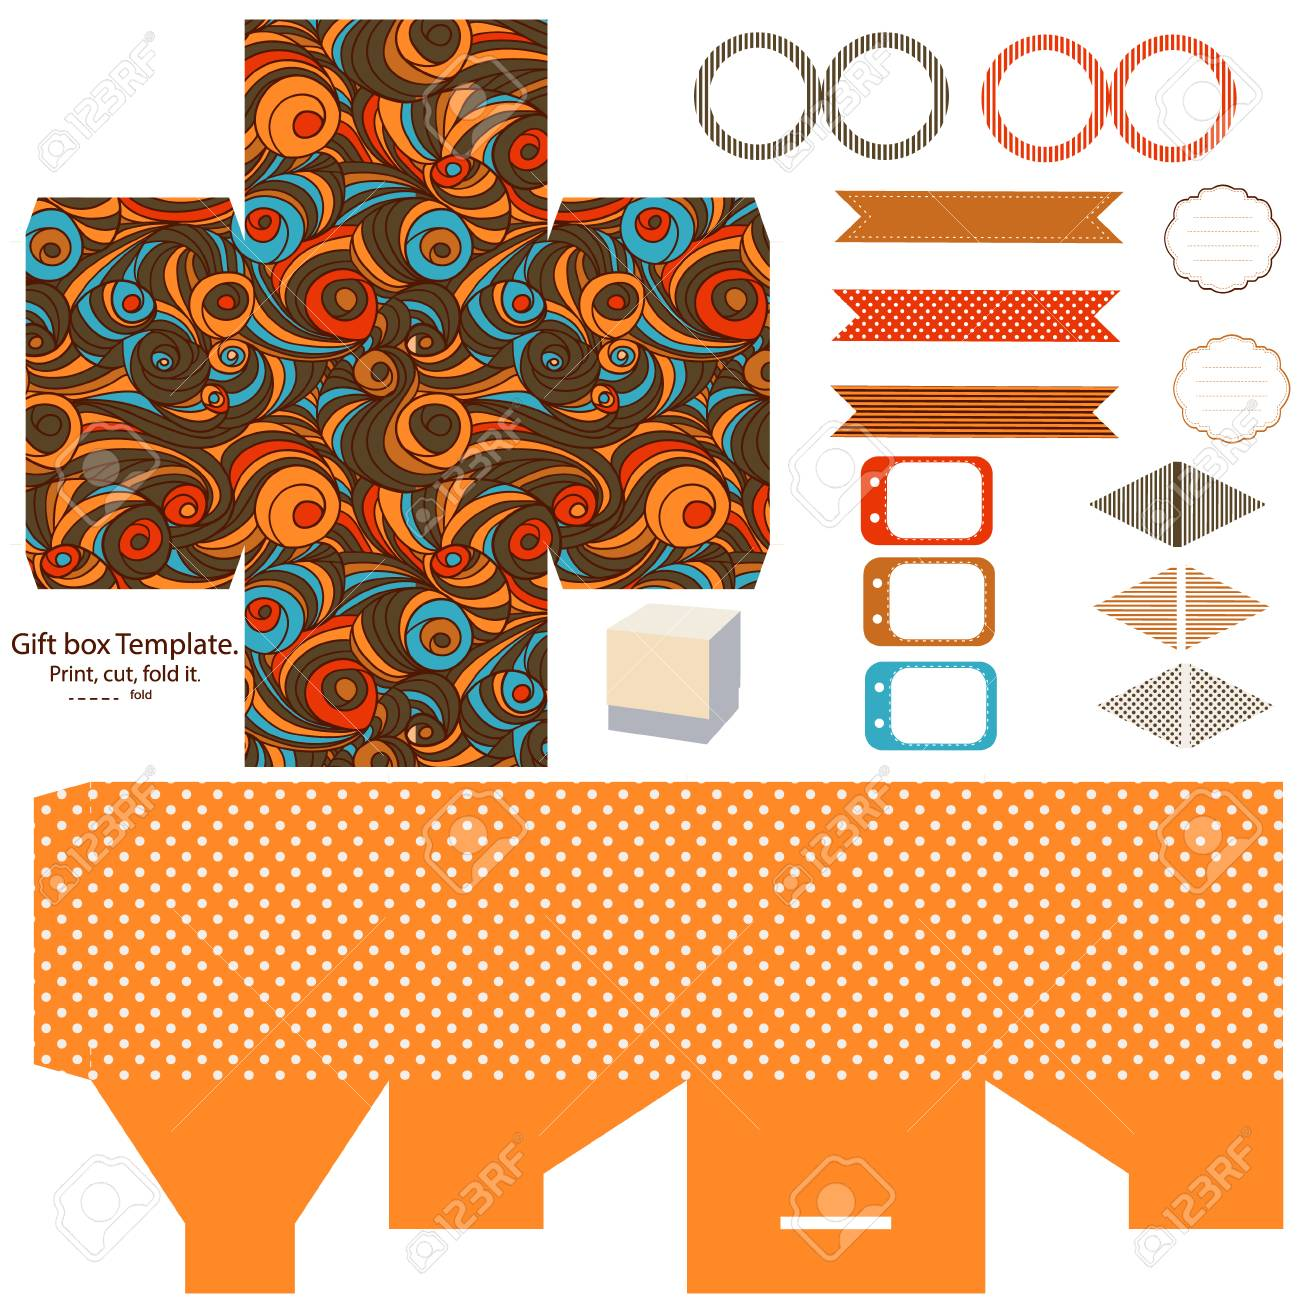 party set gift box template abstract swirl waves pattern empty labels and cupcake